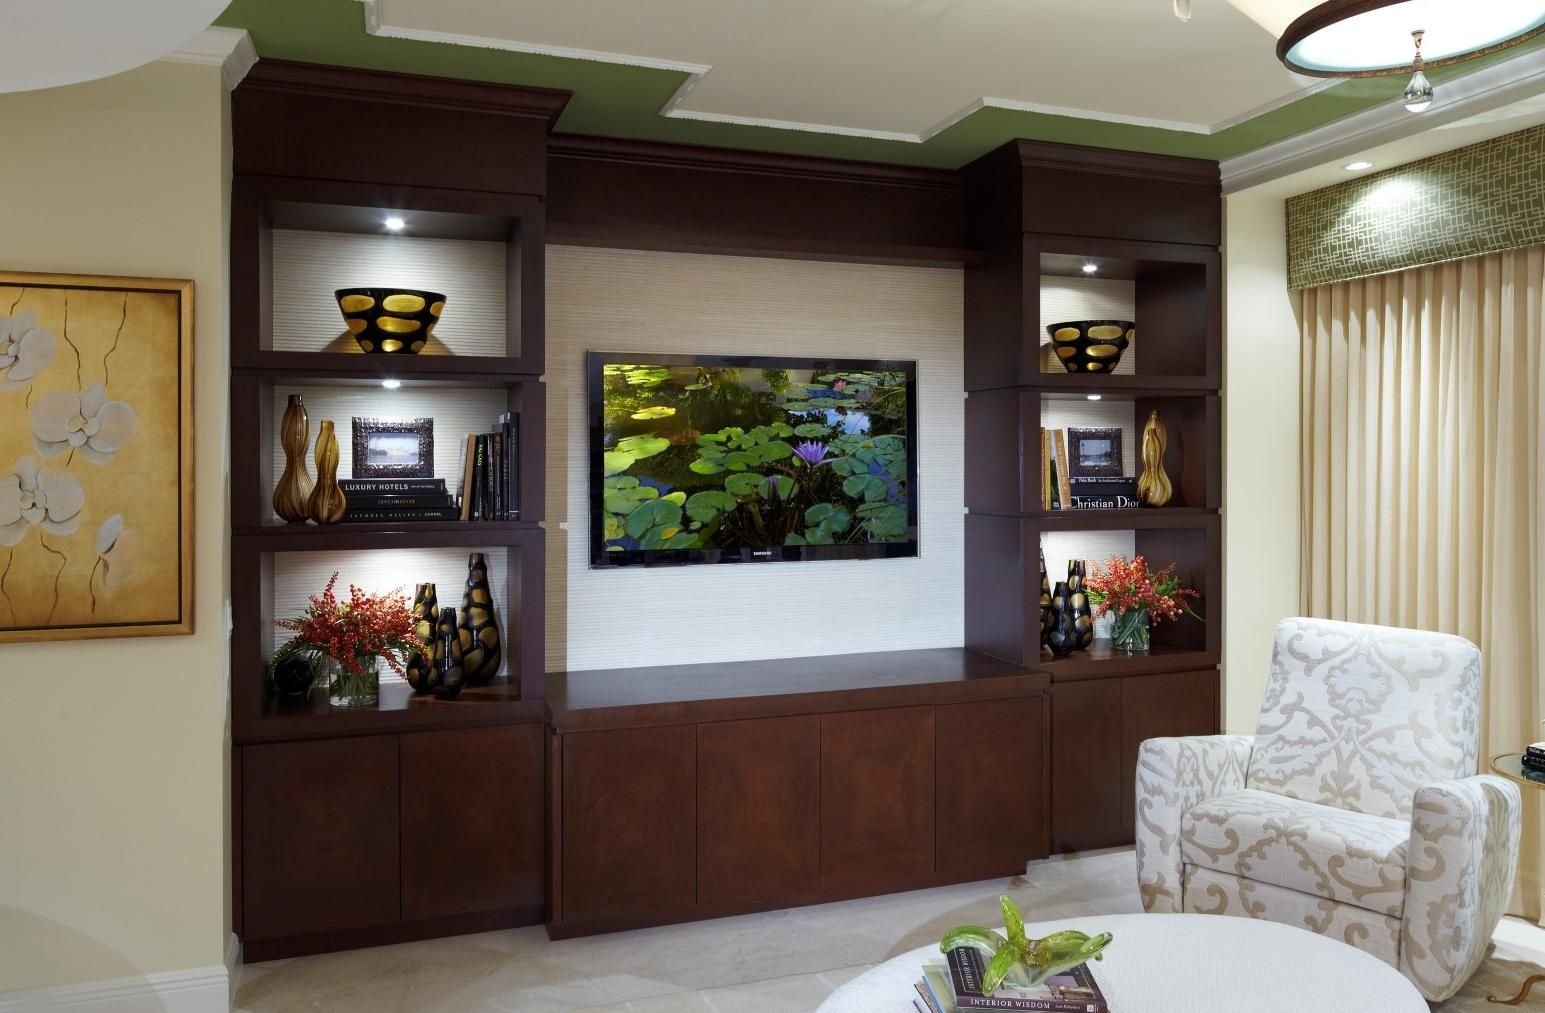 Living Room Entertainment Center Ideas   Google Search Part 41